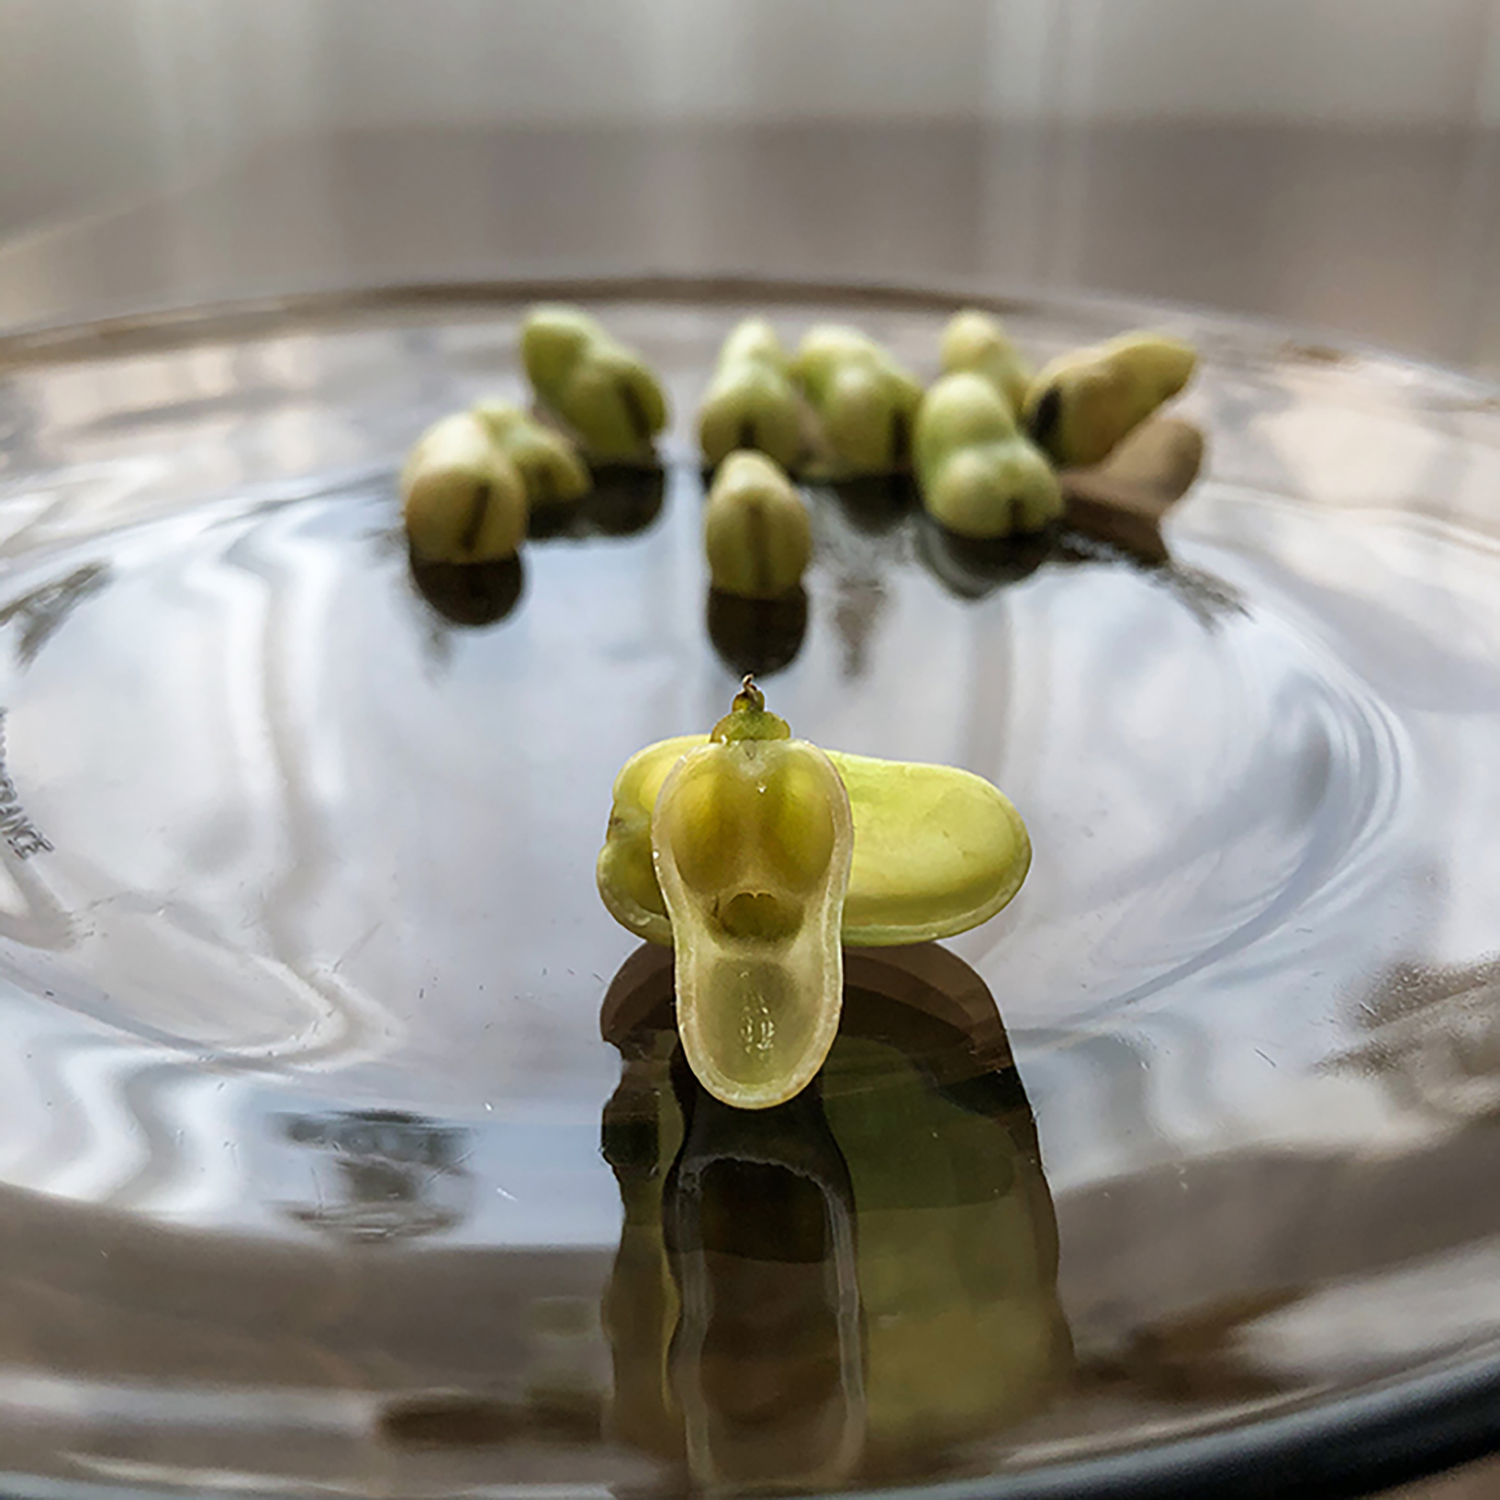 """The broad bean is looking at us like the """"scream"""" painting; we're both frightened by each other. Who has more sanitizer on hands, me or him?"""